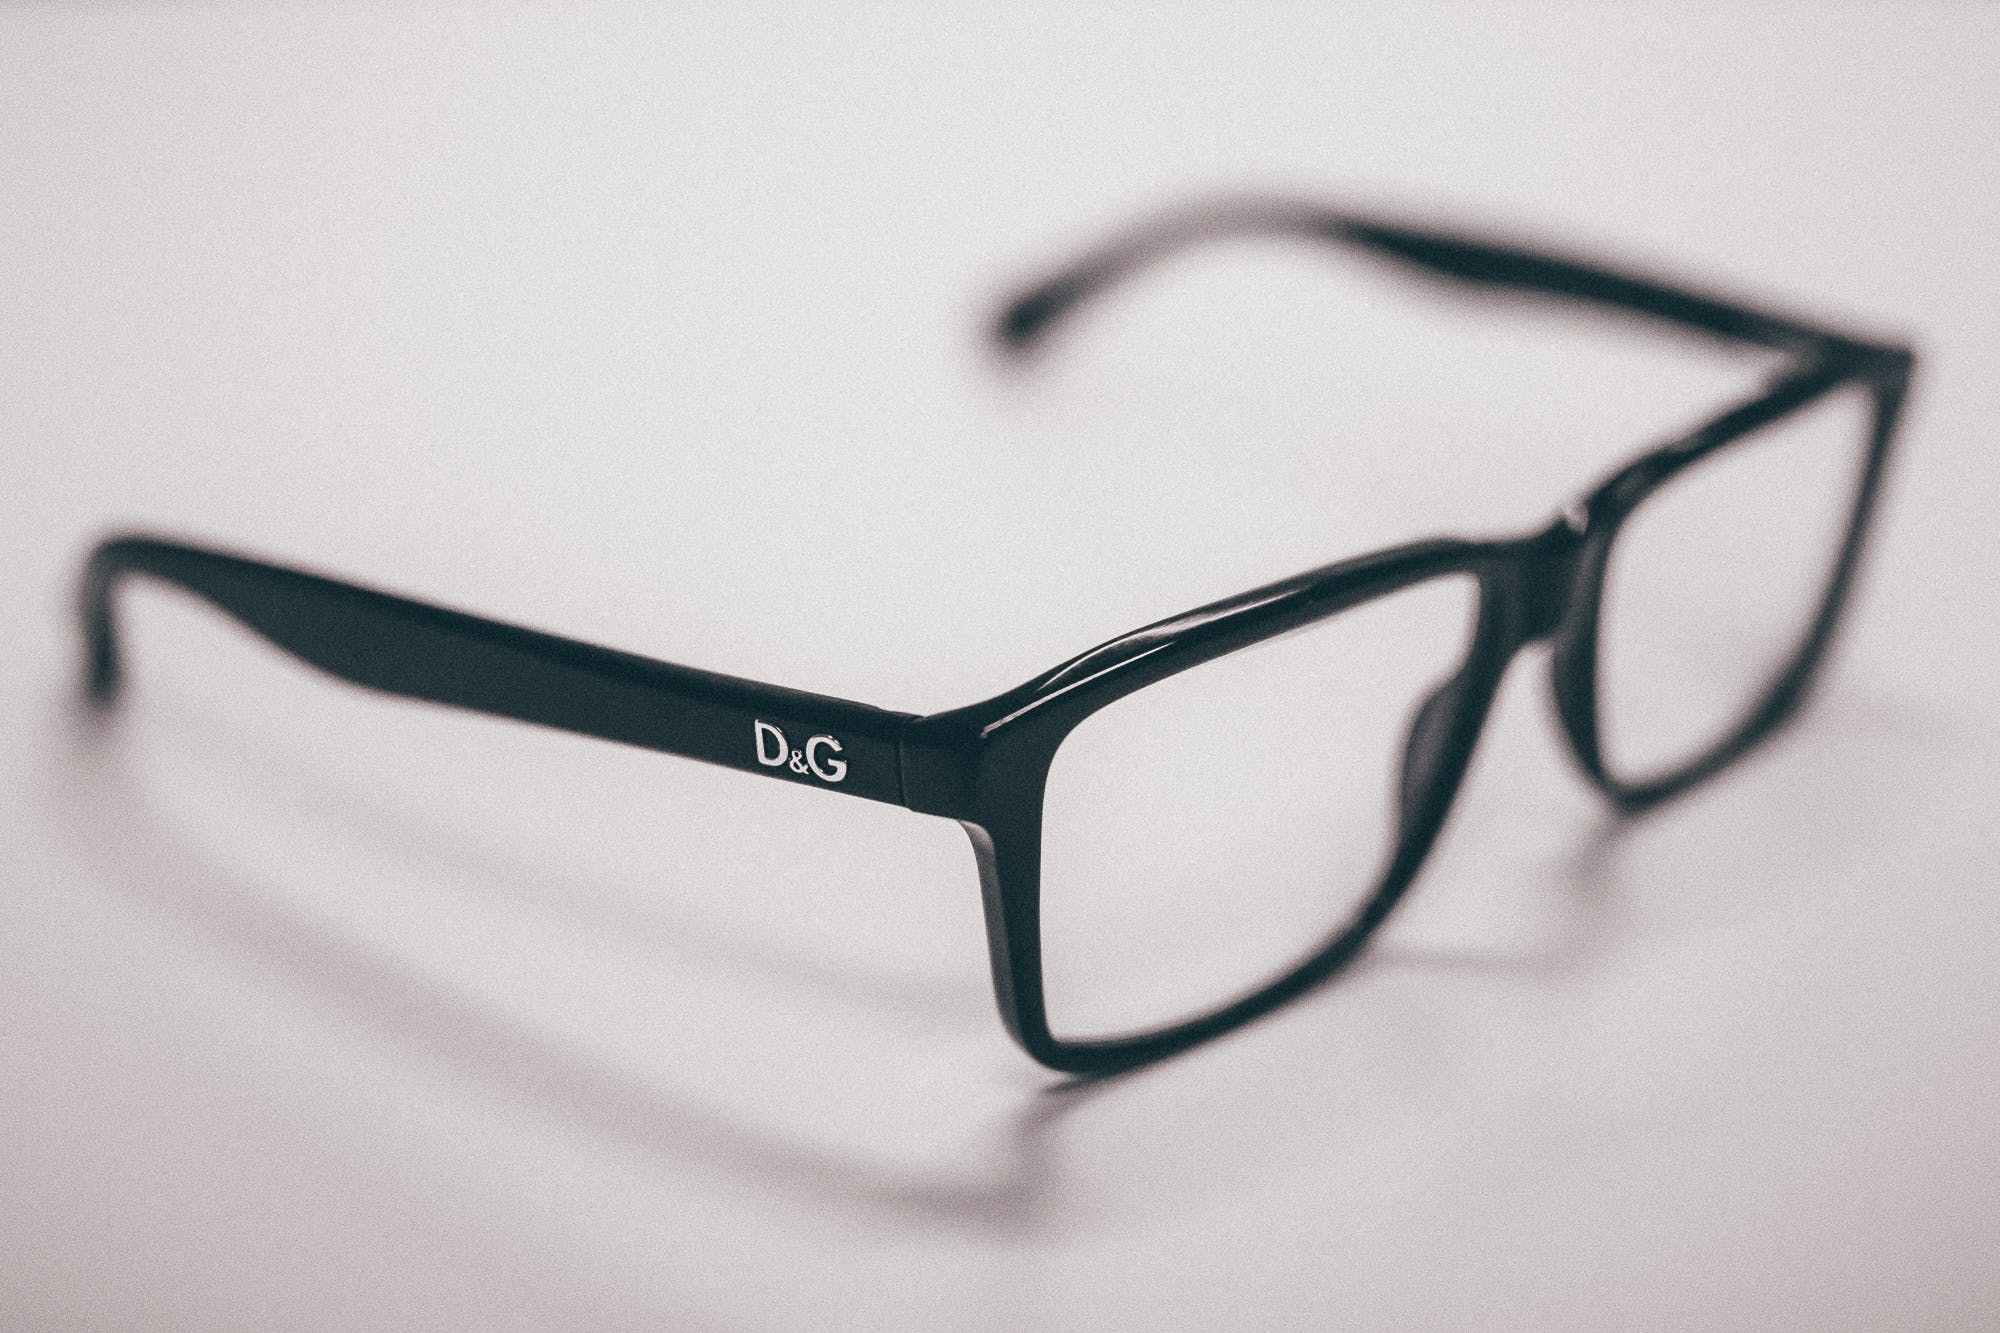 Black Dolce & Gabanna Eyeglasses on White Surface